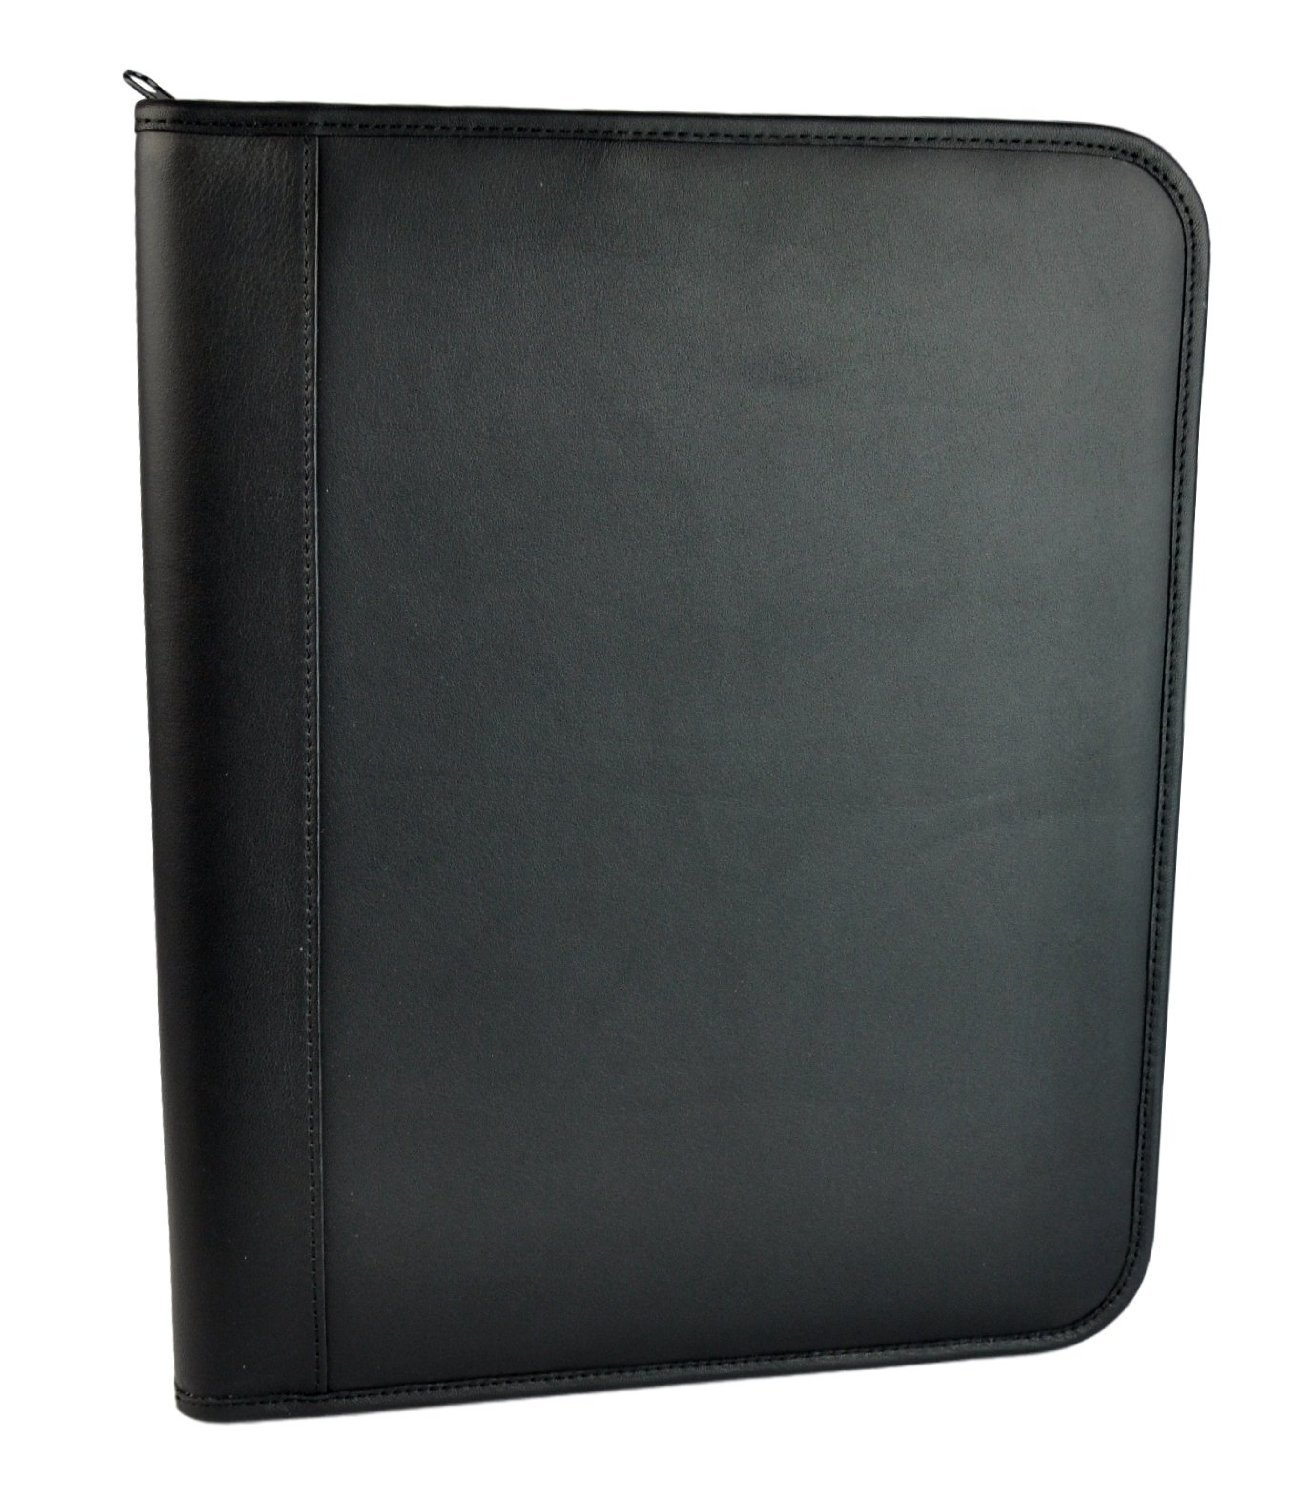 Royce Leather Zip Around Writing Padfolio, Black with Suede Interior